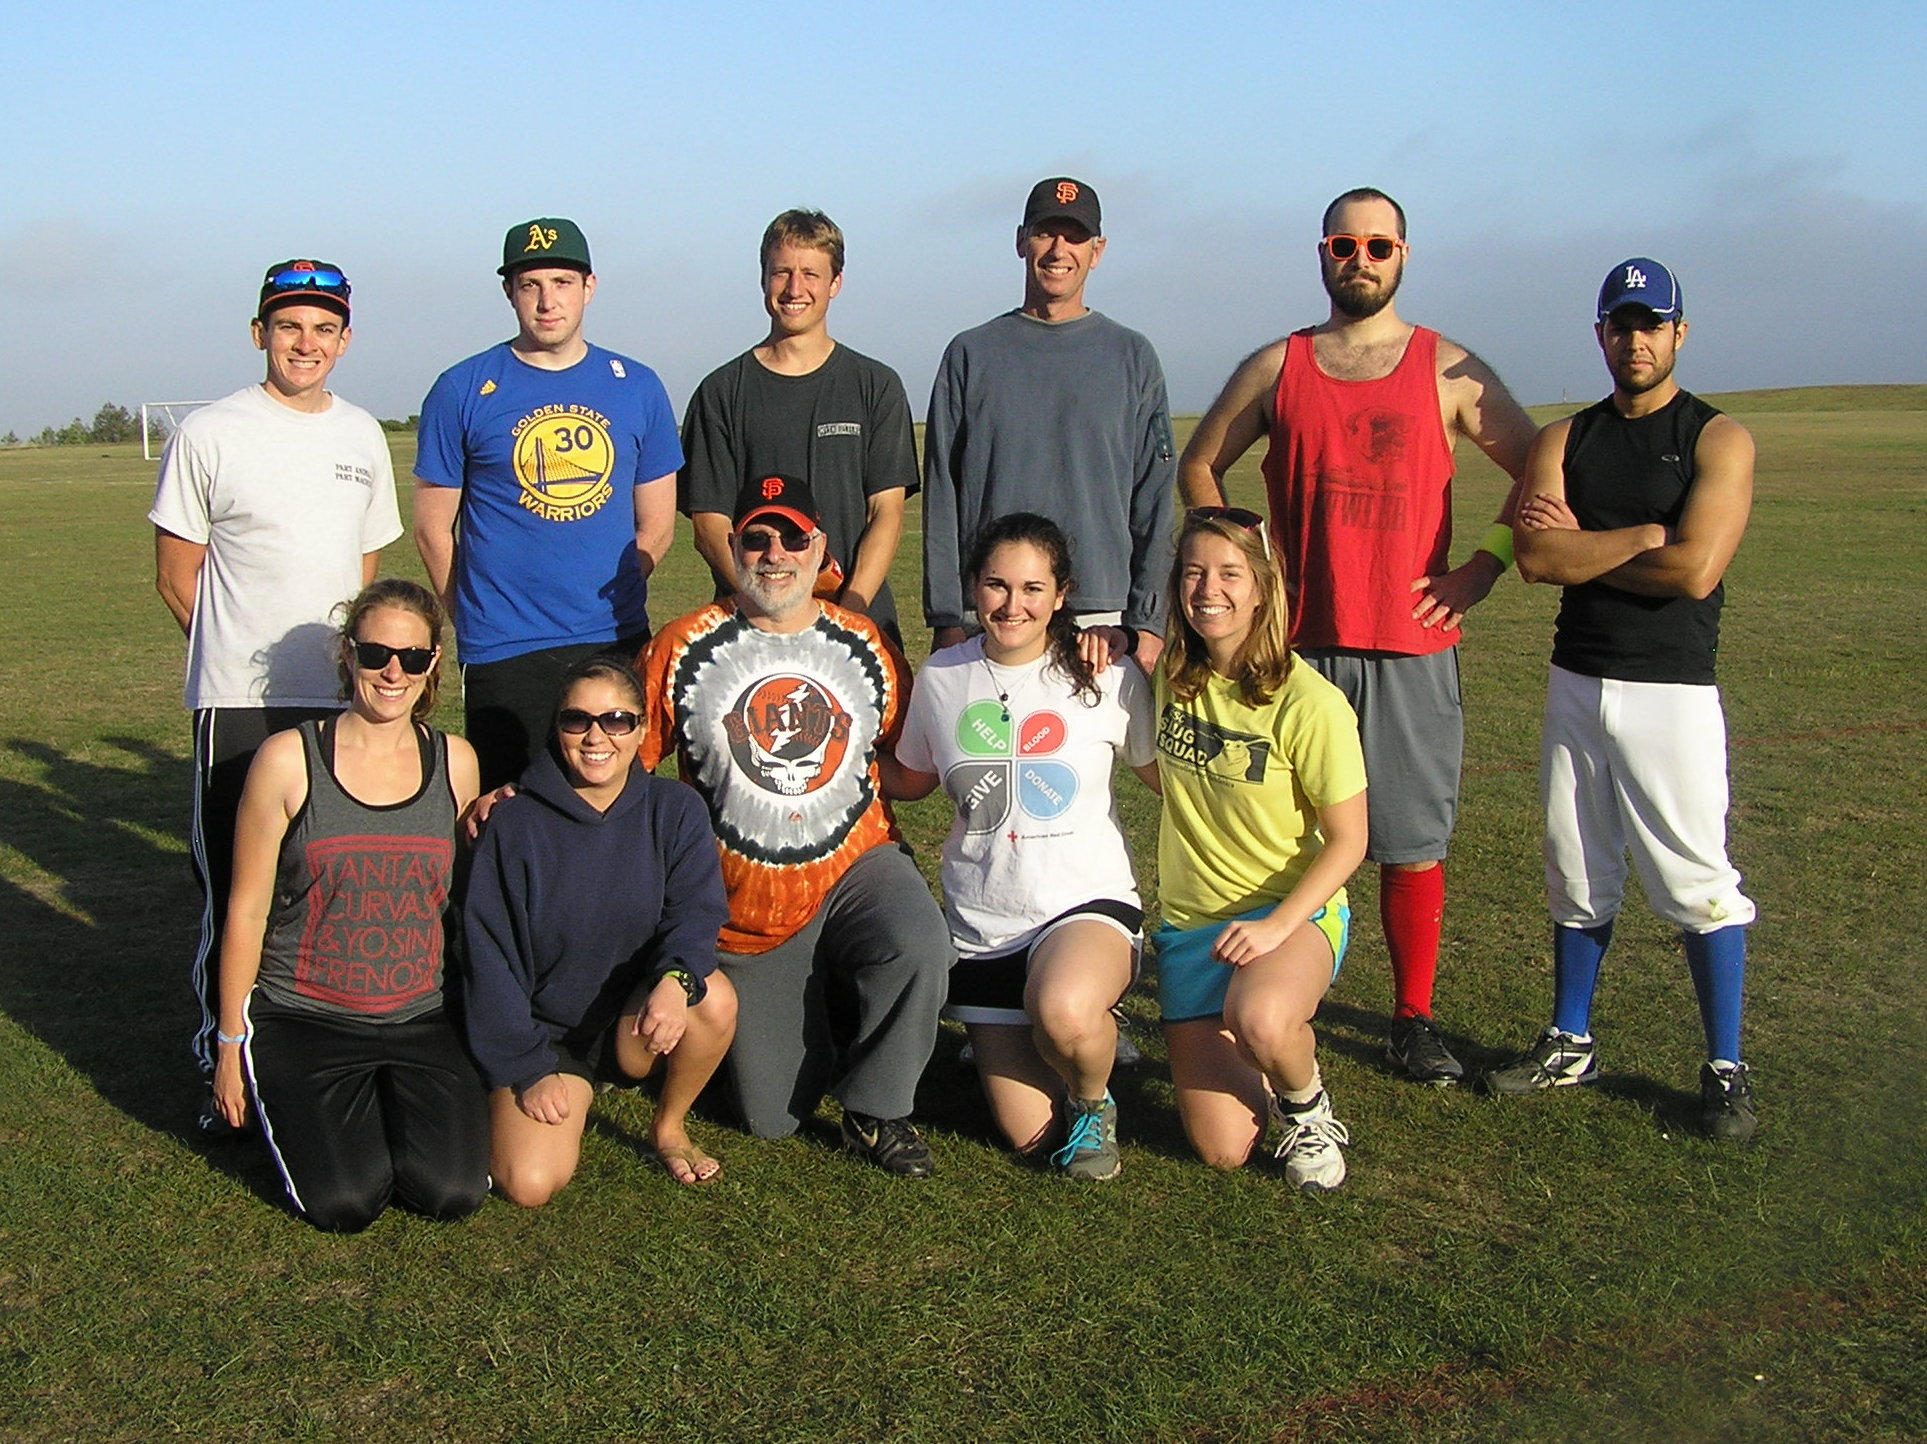 Fall 2013 Coed Softball Team